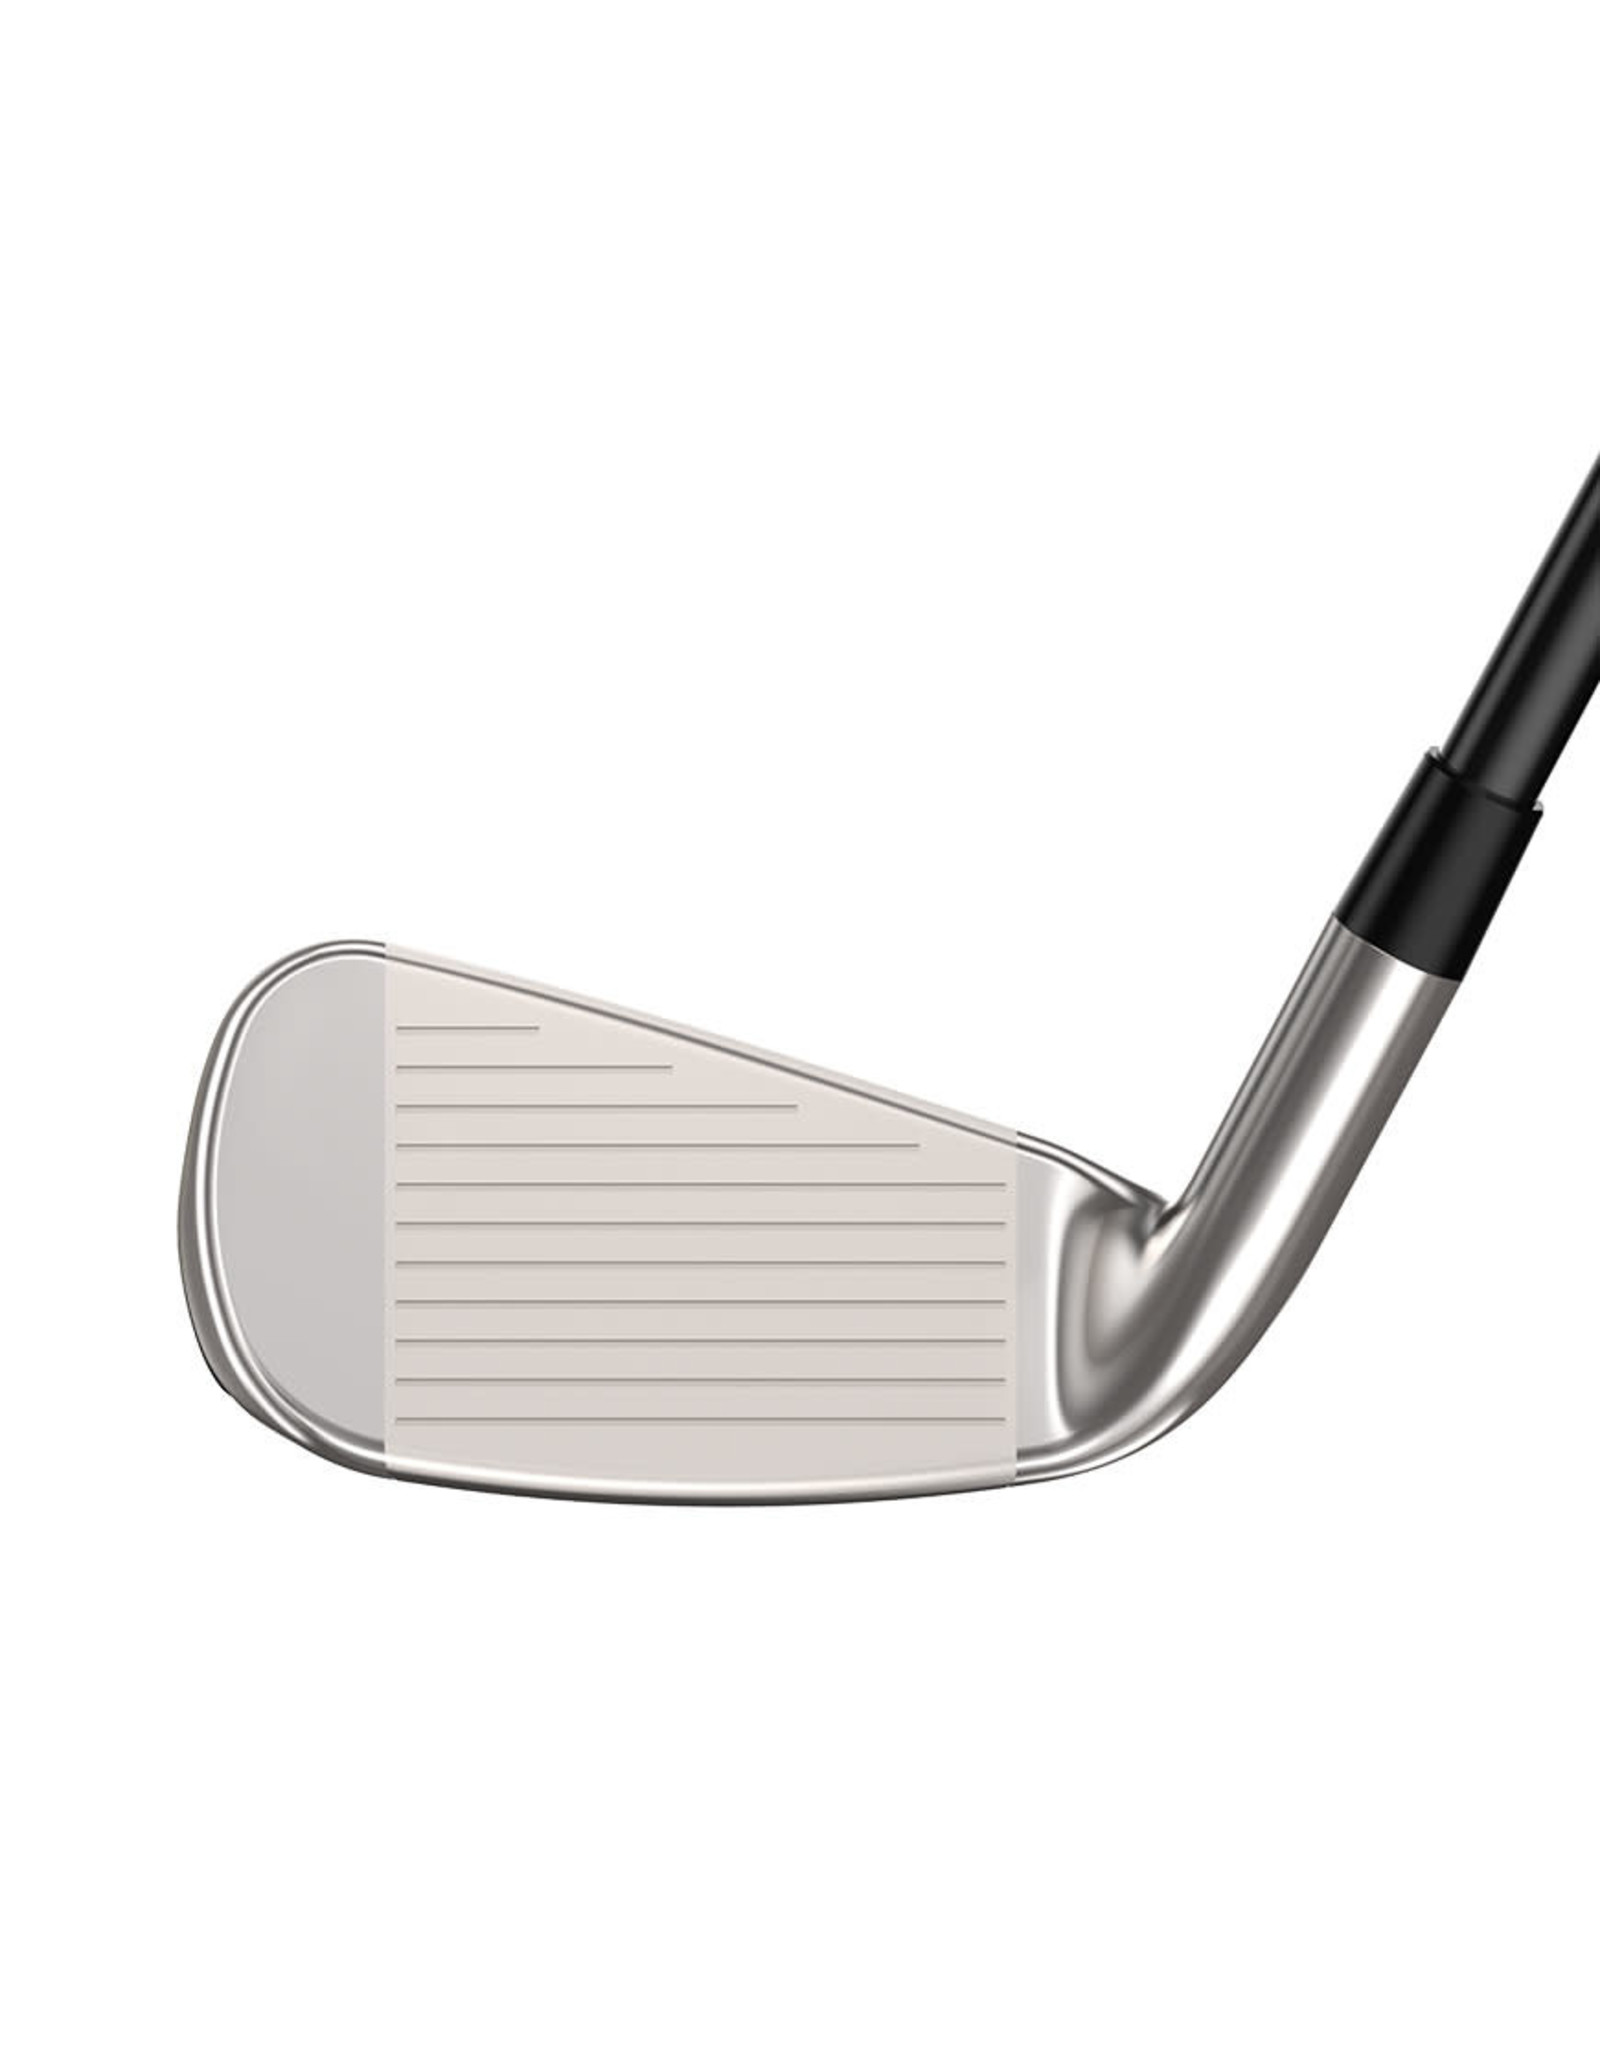 Cleveland Cleveland Launcher HB Turbo Irons